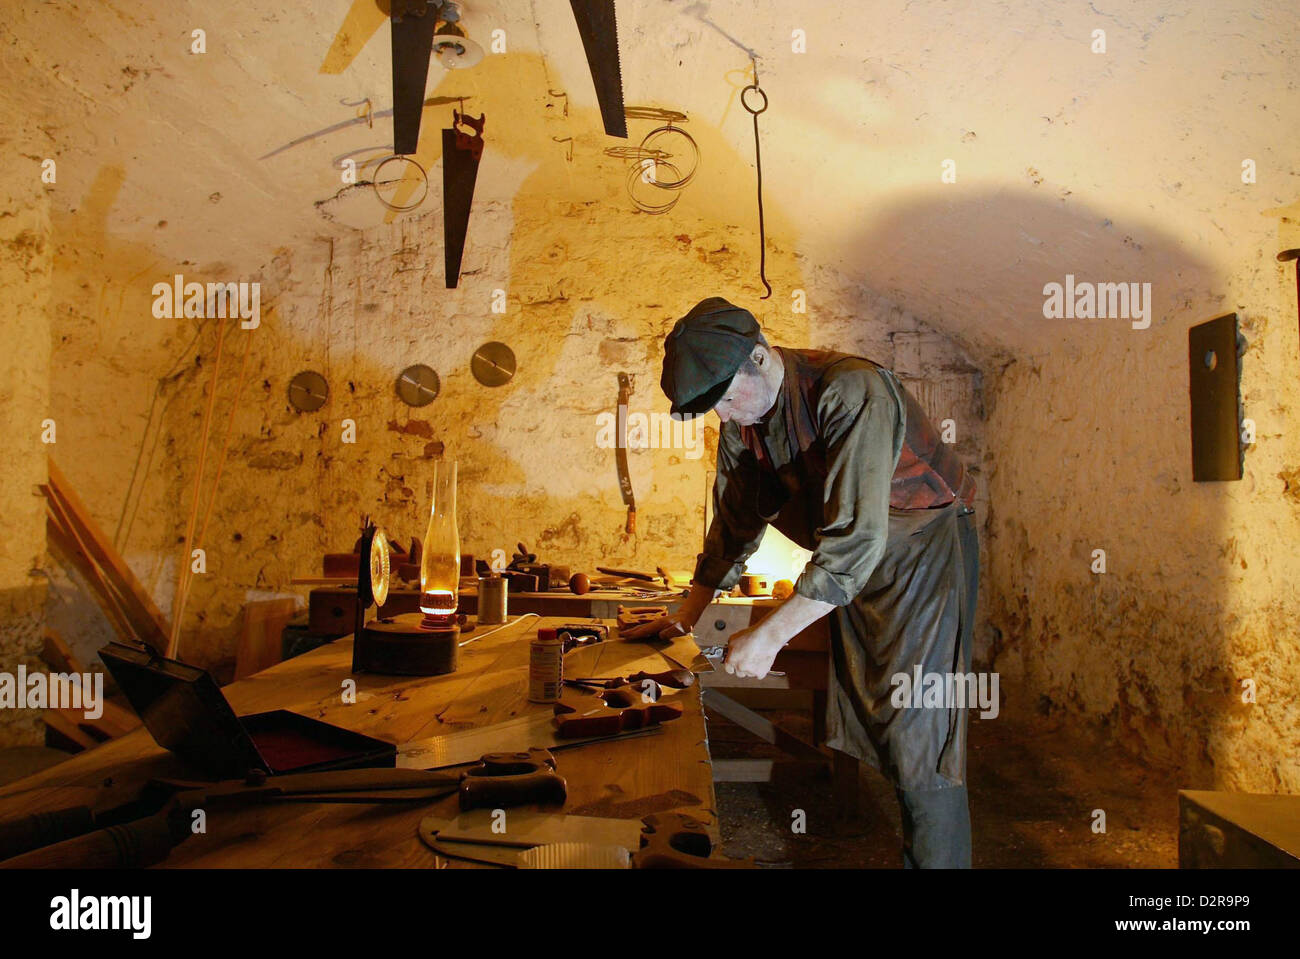 Chesney's workshop, one of the displays at the Real Mary King's Close tourist attraction in Edinburgh, Scotland - Stock Image